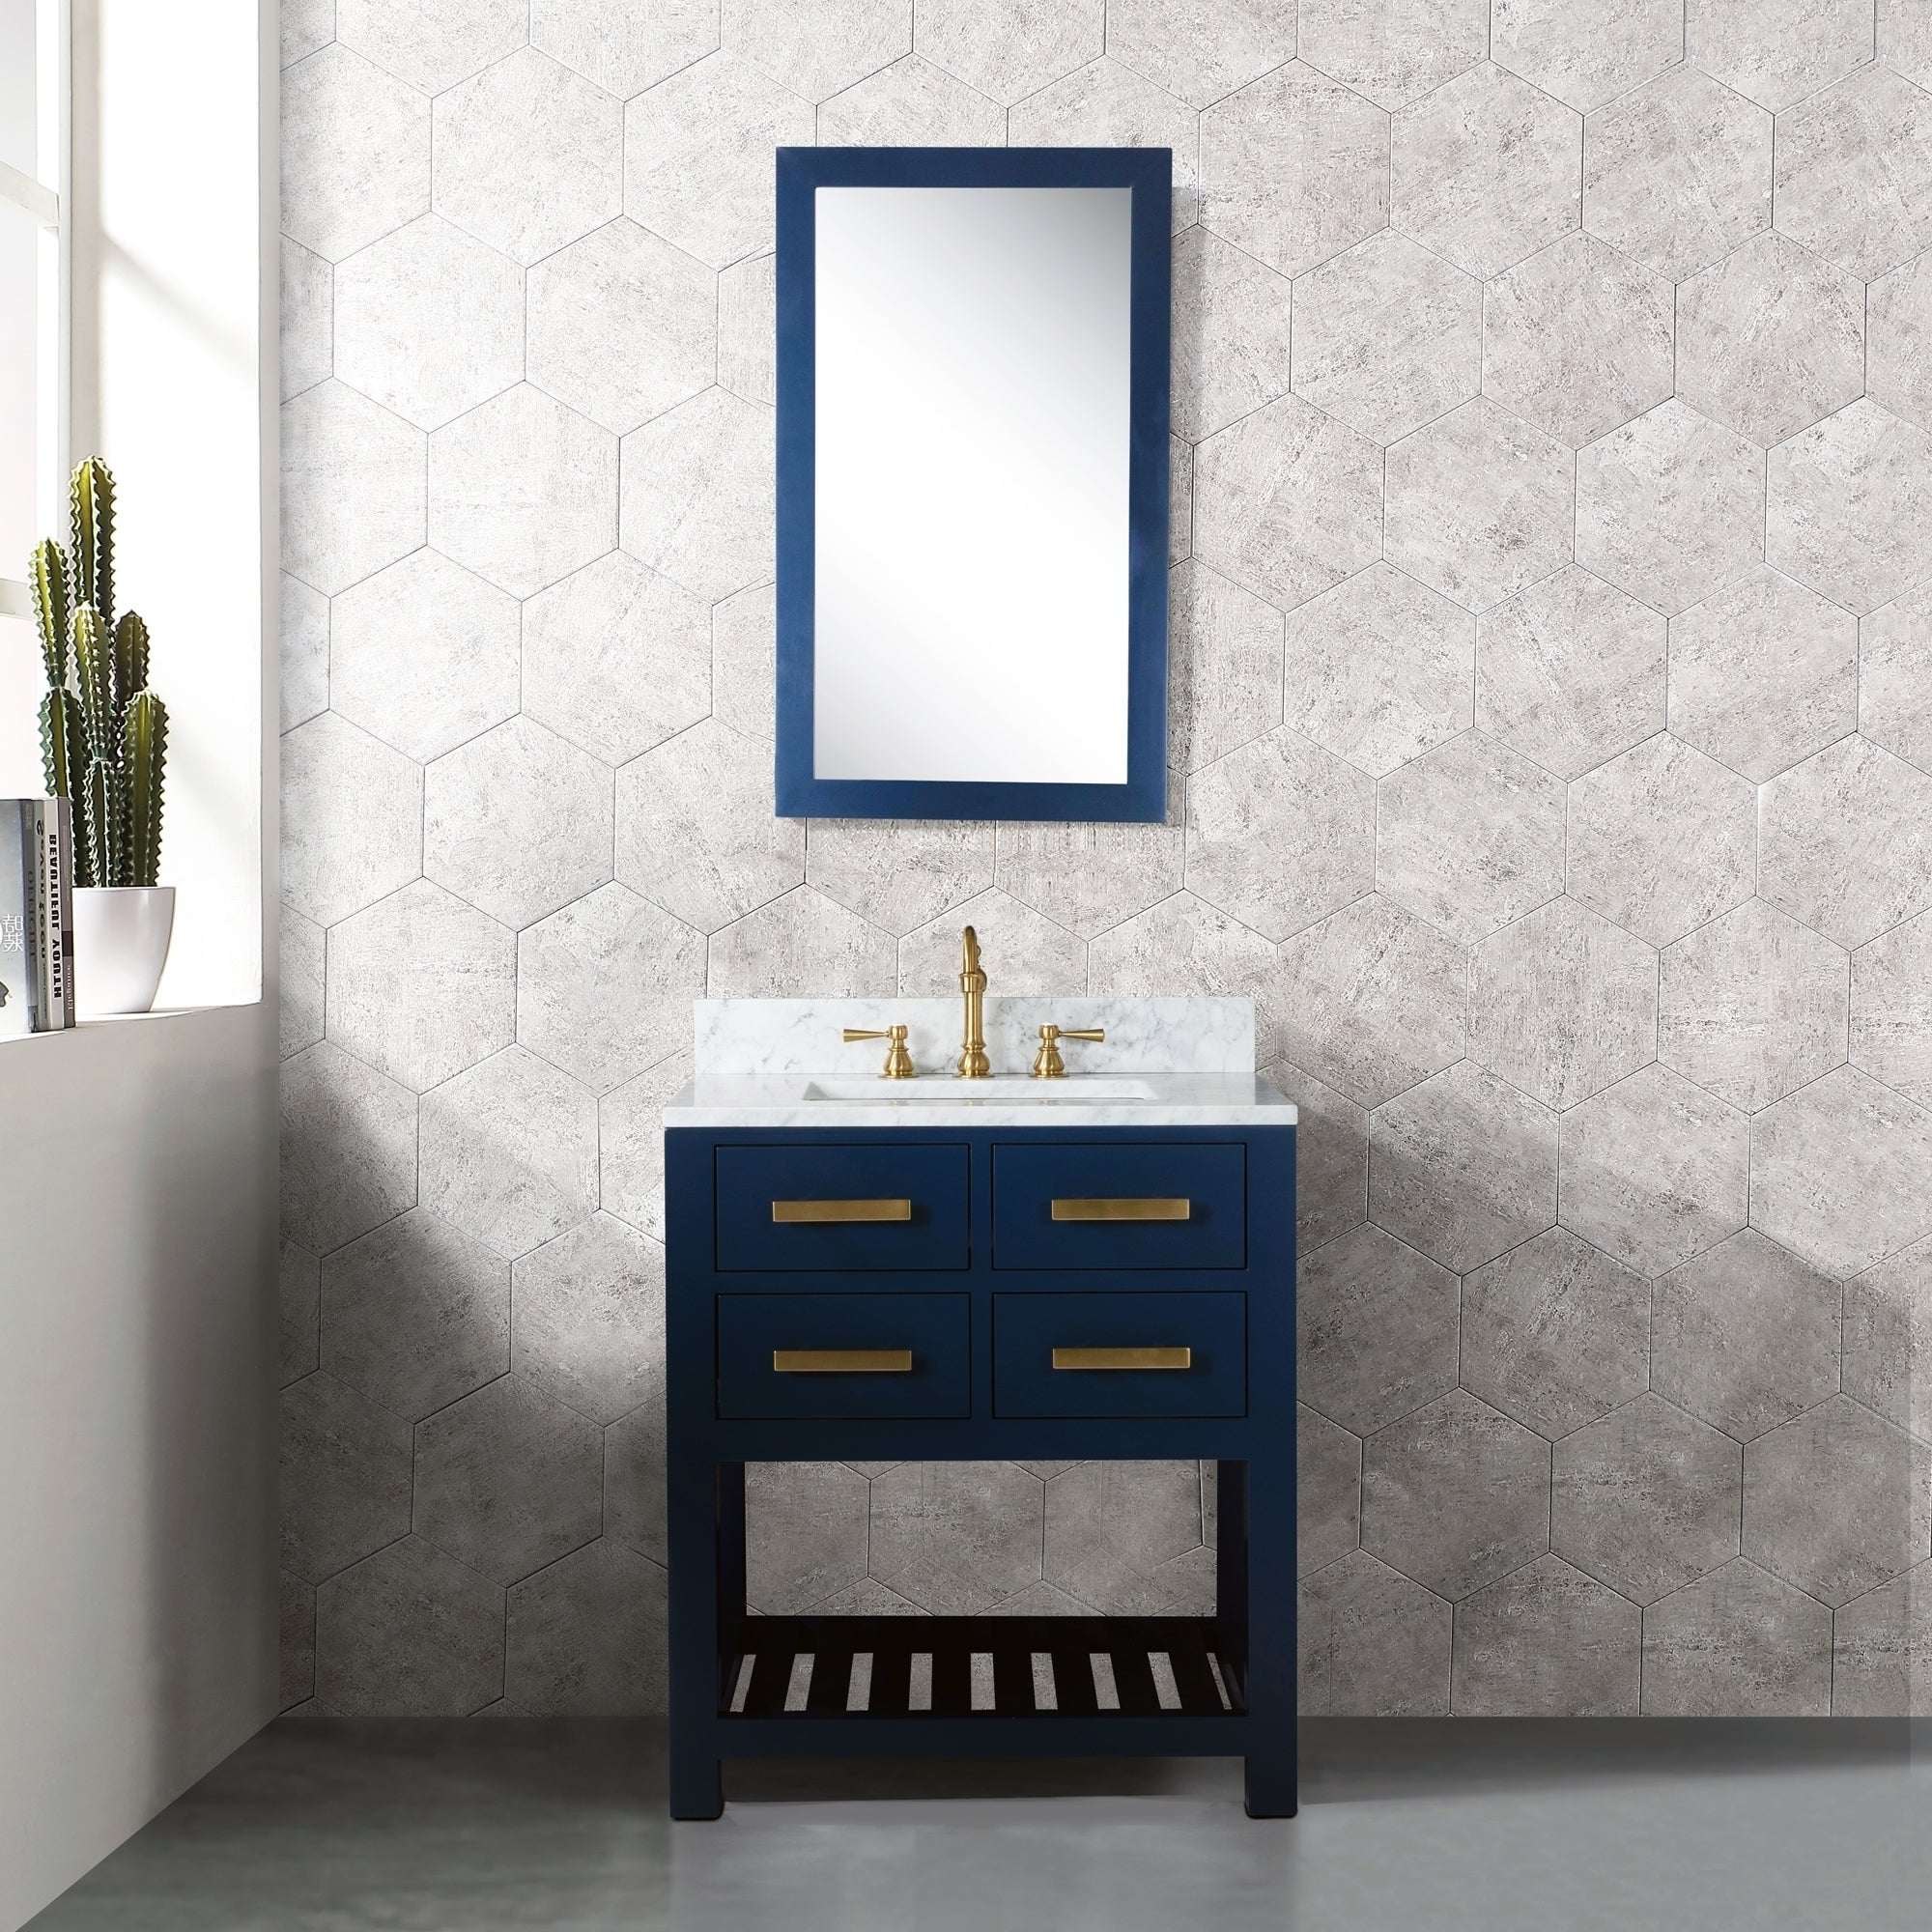 Shop For 30 Inch Monarch Blue Single Sink Bathroom Vanity From The Madalyn Collection Get Free Delivery On Everything At Overstock Your Online Furniture Outlet Store Get 5 In Rewards With Club O 28807304